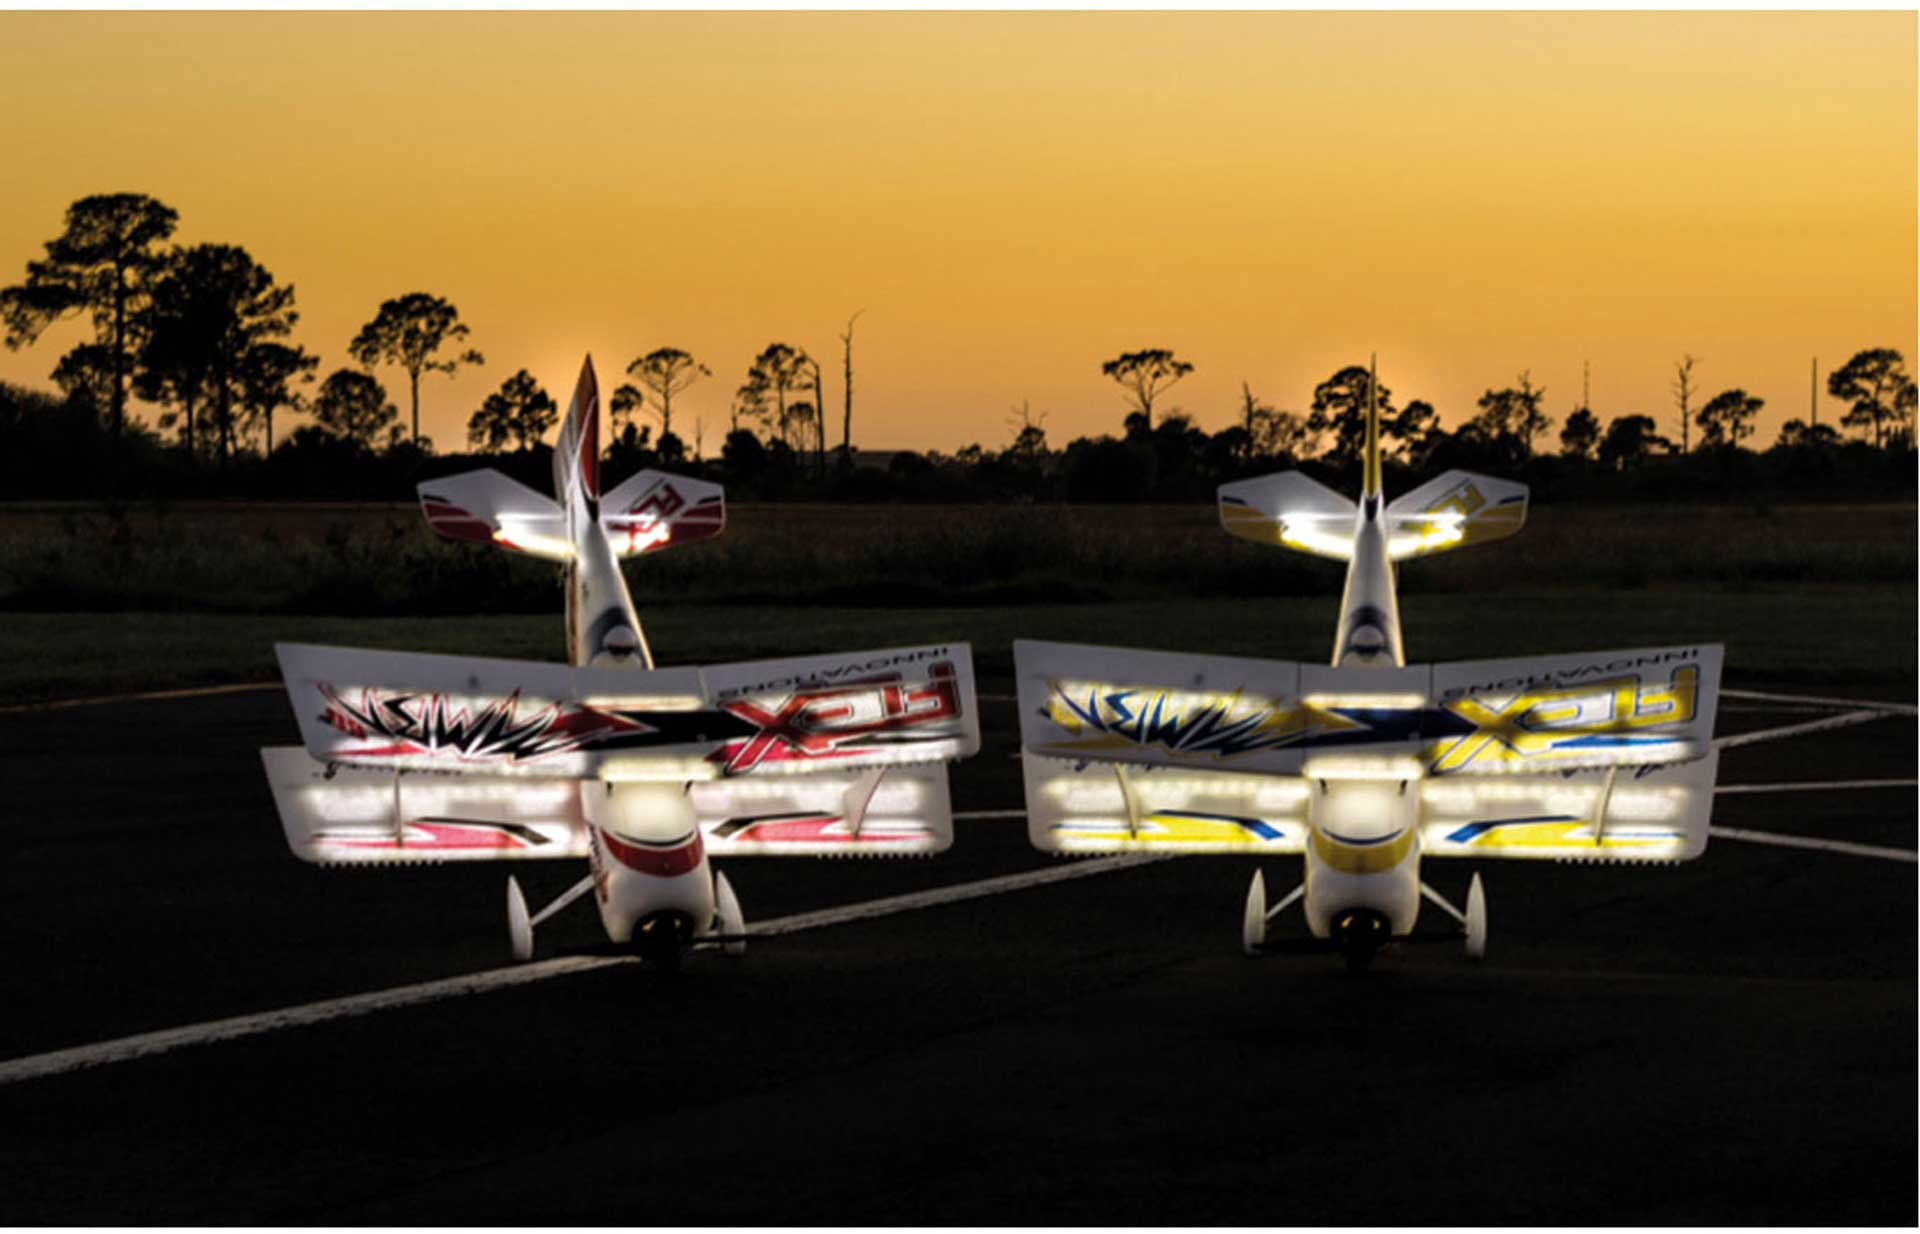 PREMIER AIRCRAFT MAMBA 60 E+ YELLOW/BLUE PNP NIGHT WITH AURA 8 AND LED LIGHTING DOUBLE DECKER